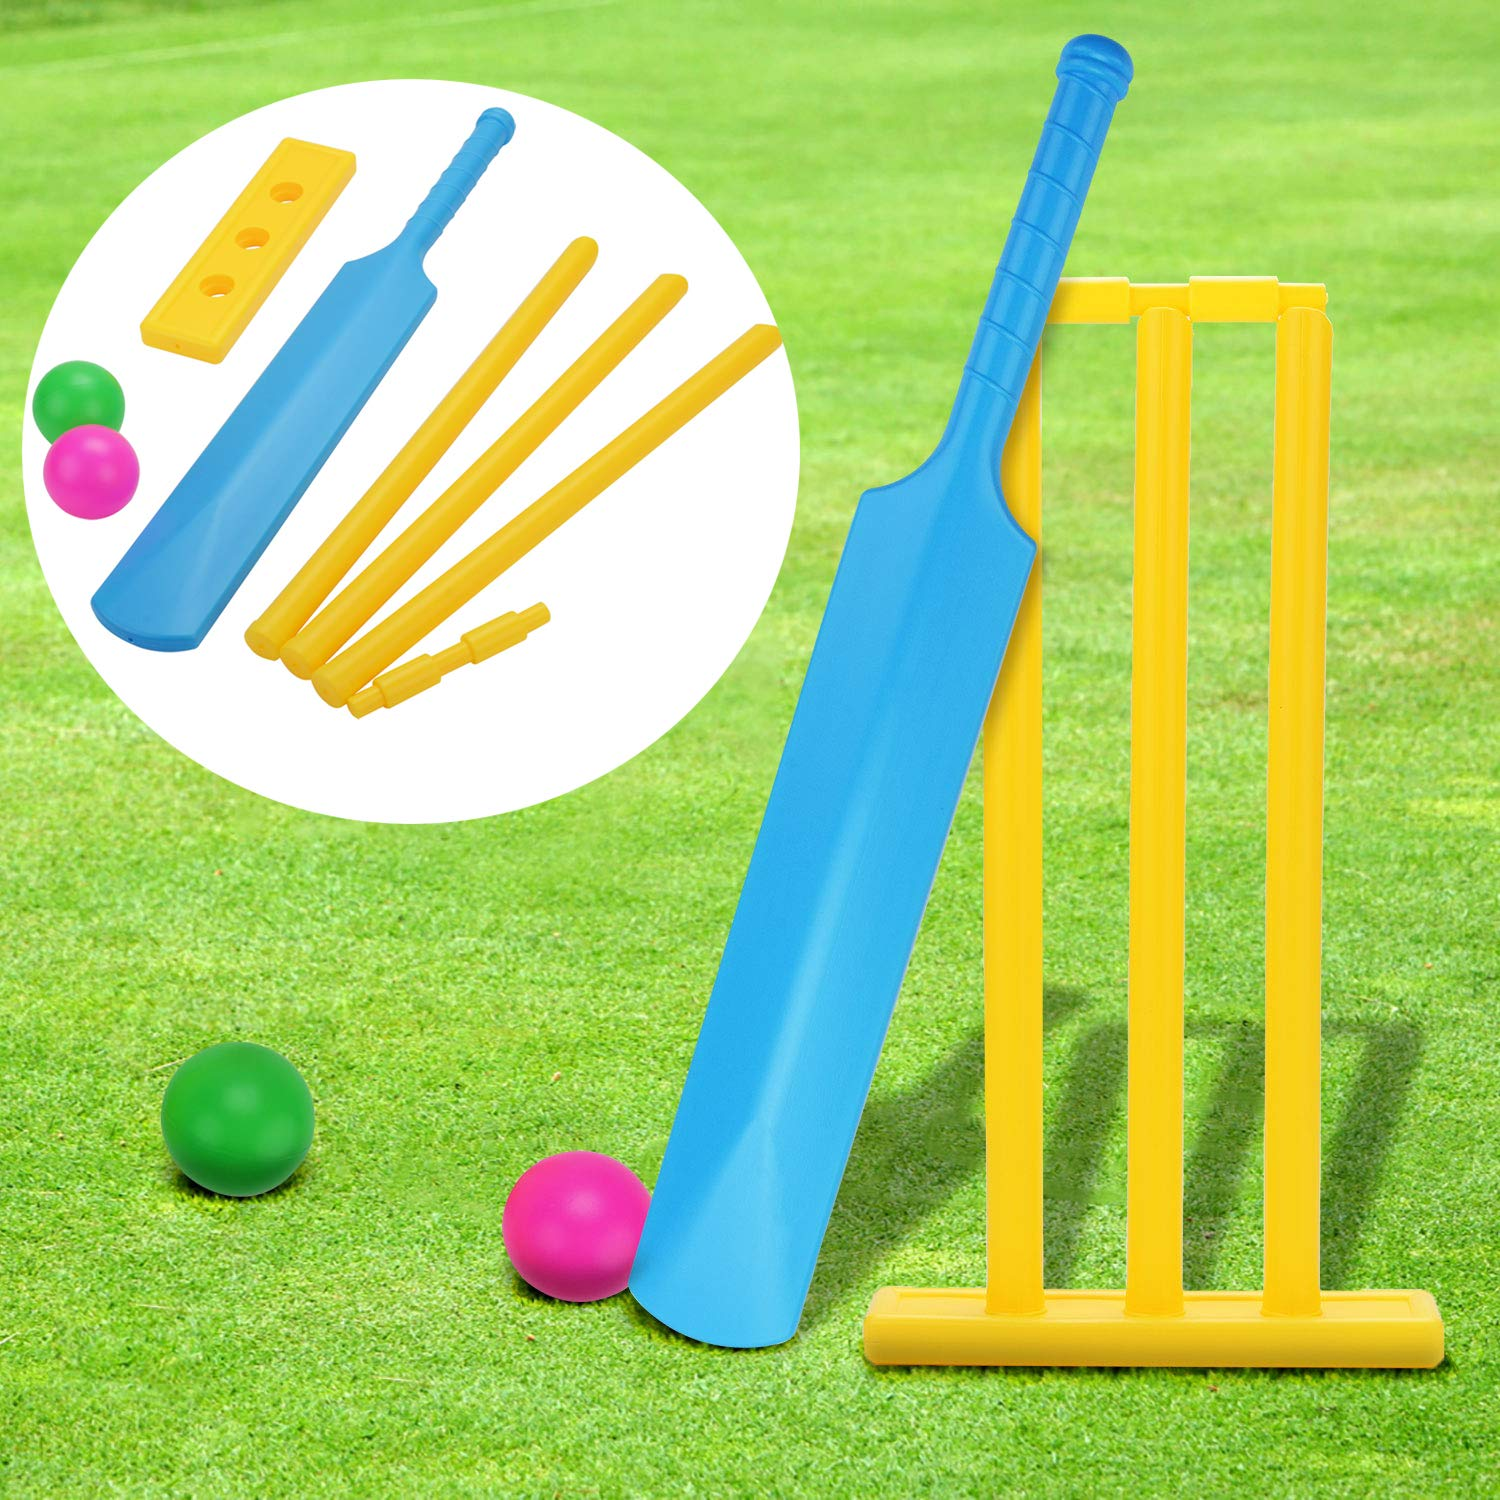 great cricket set for little ones